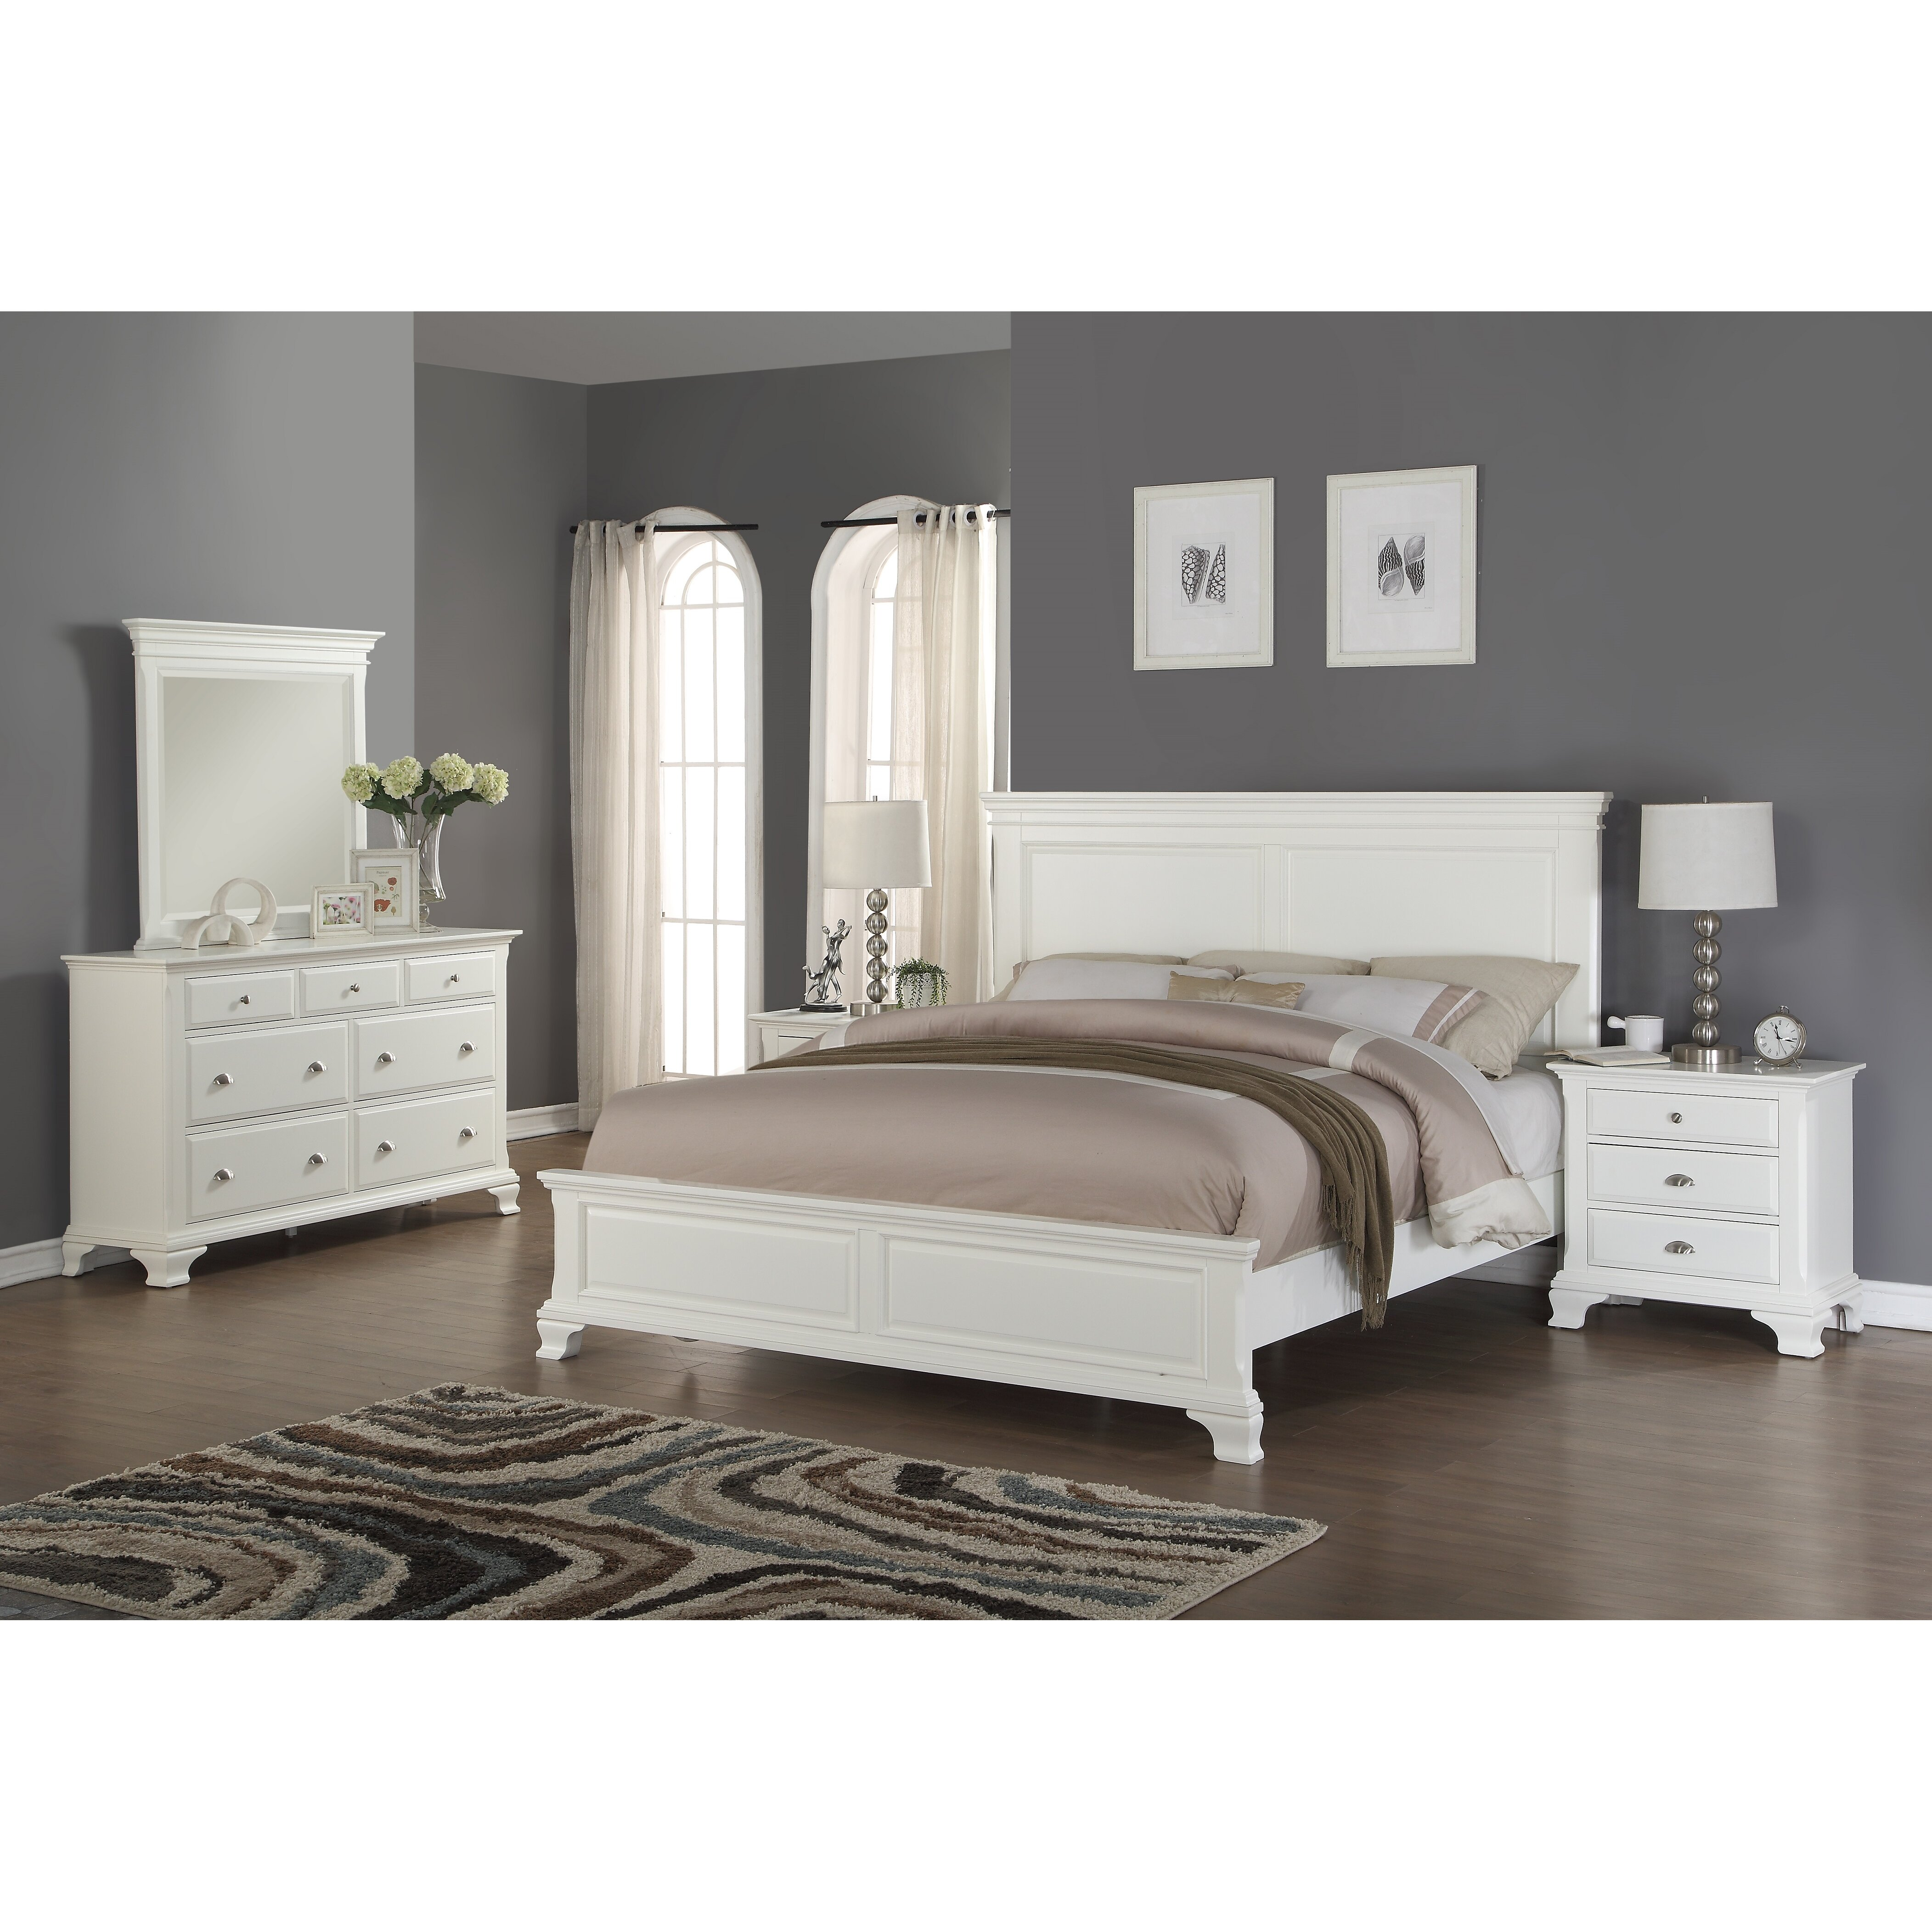 Roundhill furniture laveno panel 5 piece bedroom set for 5 piece bedroom set